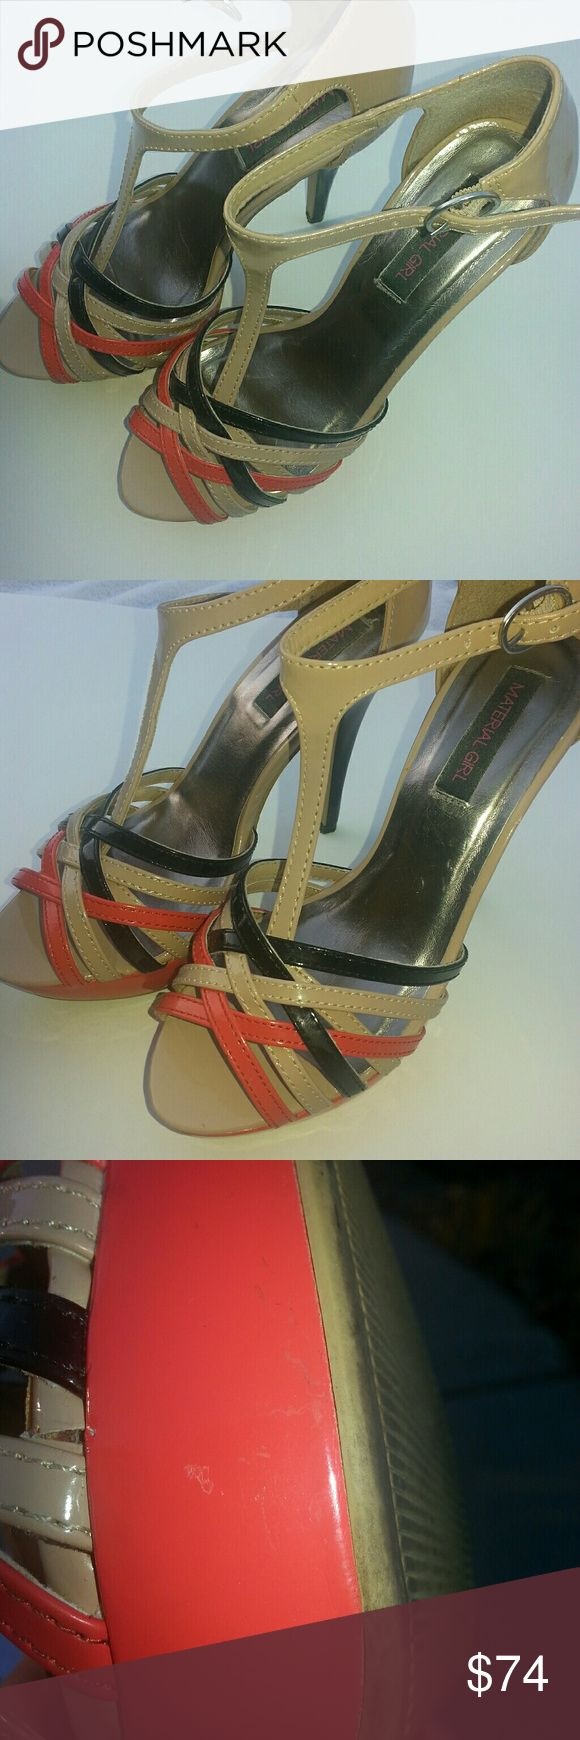 Material Girl Heels Tan w/black and orange accents. Hot shoe! Looks amazing with black skirt and tan blouse.  The orange is perfectly accentuated, adding a pop of color to your outfit. Definitely can use for a night out, dancing, and/or for any other occasion - you can move around even with the high heel. Been stored in box. There are a few little markings from gentle love - black part of heel has a small mark. Also refer to pics above re other little marks. They're very tiny and can't…